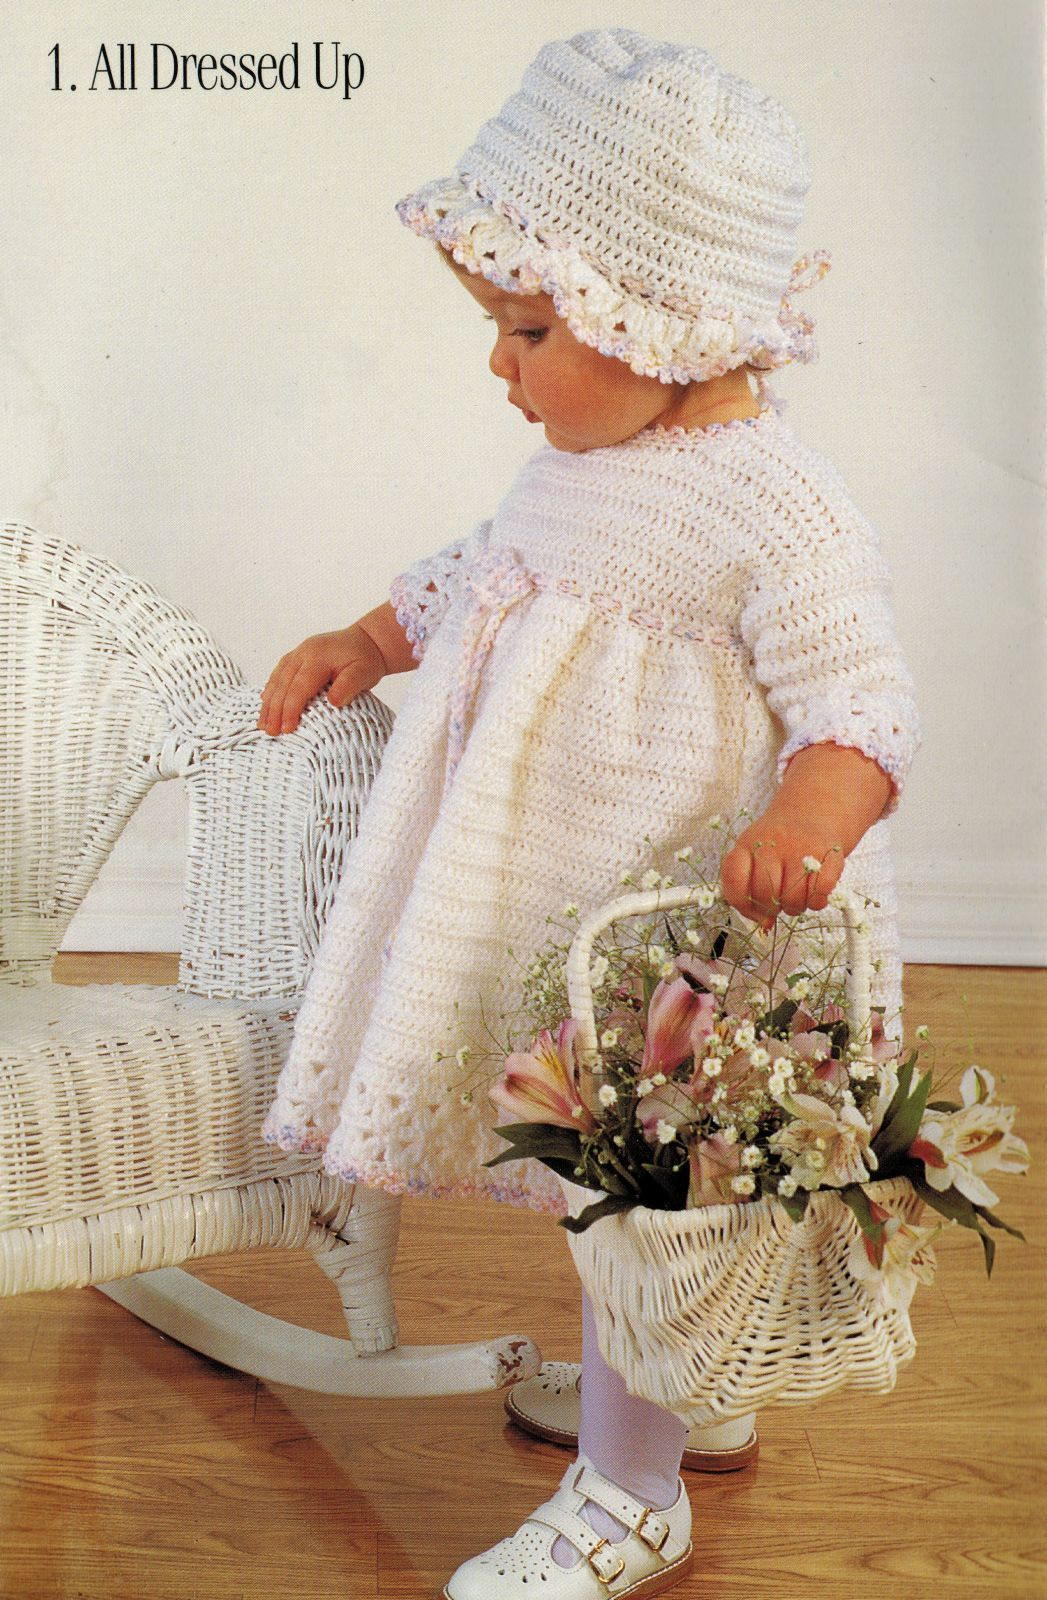 ba5bd233e Knit Crochet Baby Dress Mop Hat Mitts Bootie and similar items